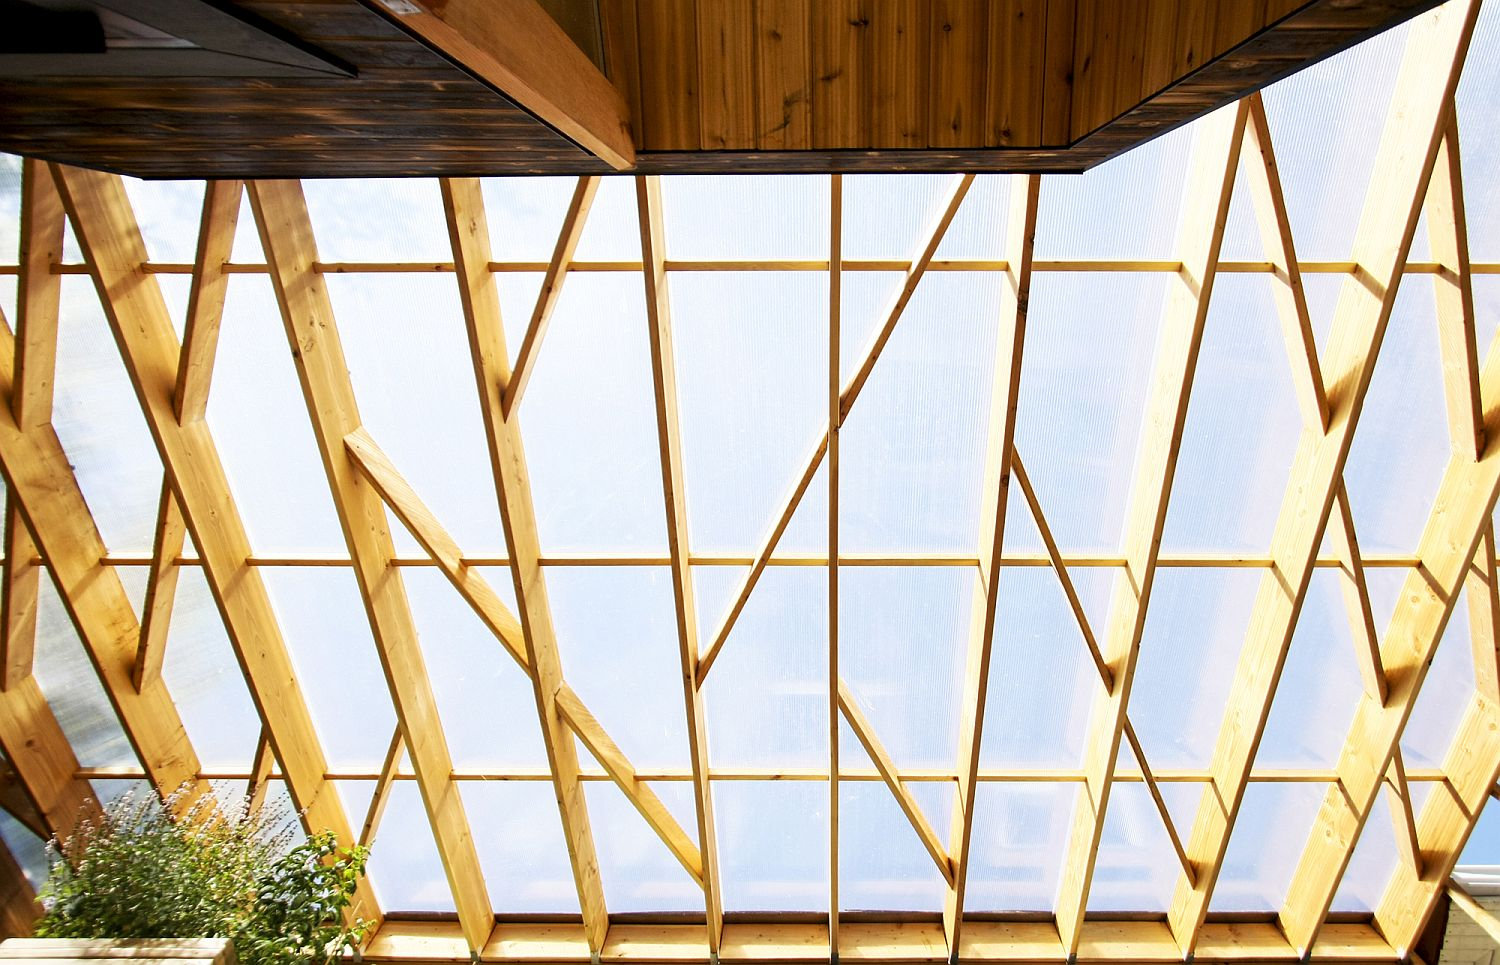 Diagonally braced lattice structure and polycarbonate screen bring in soft, diffused light